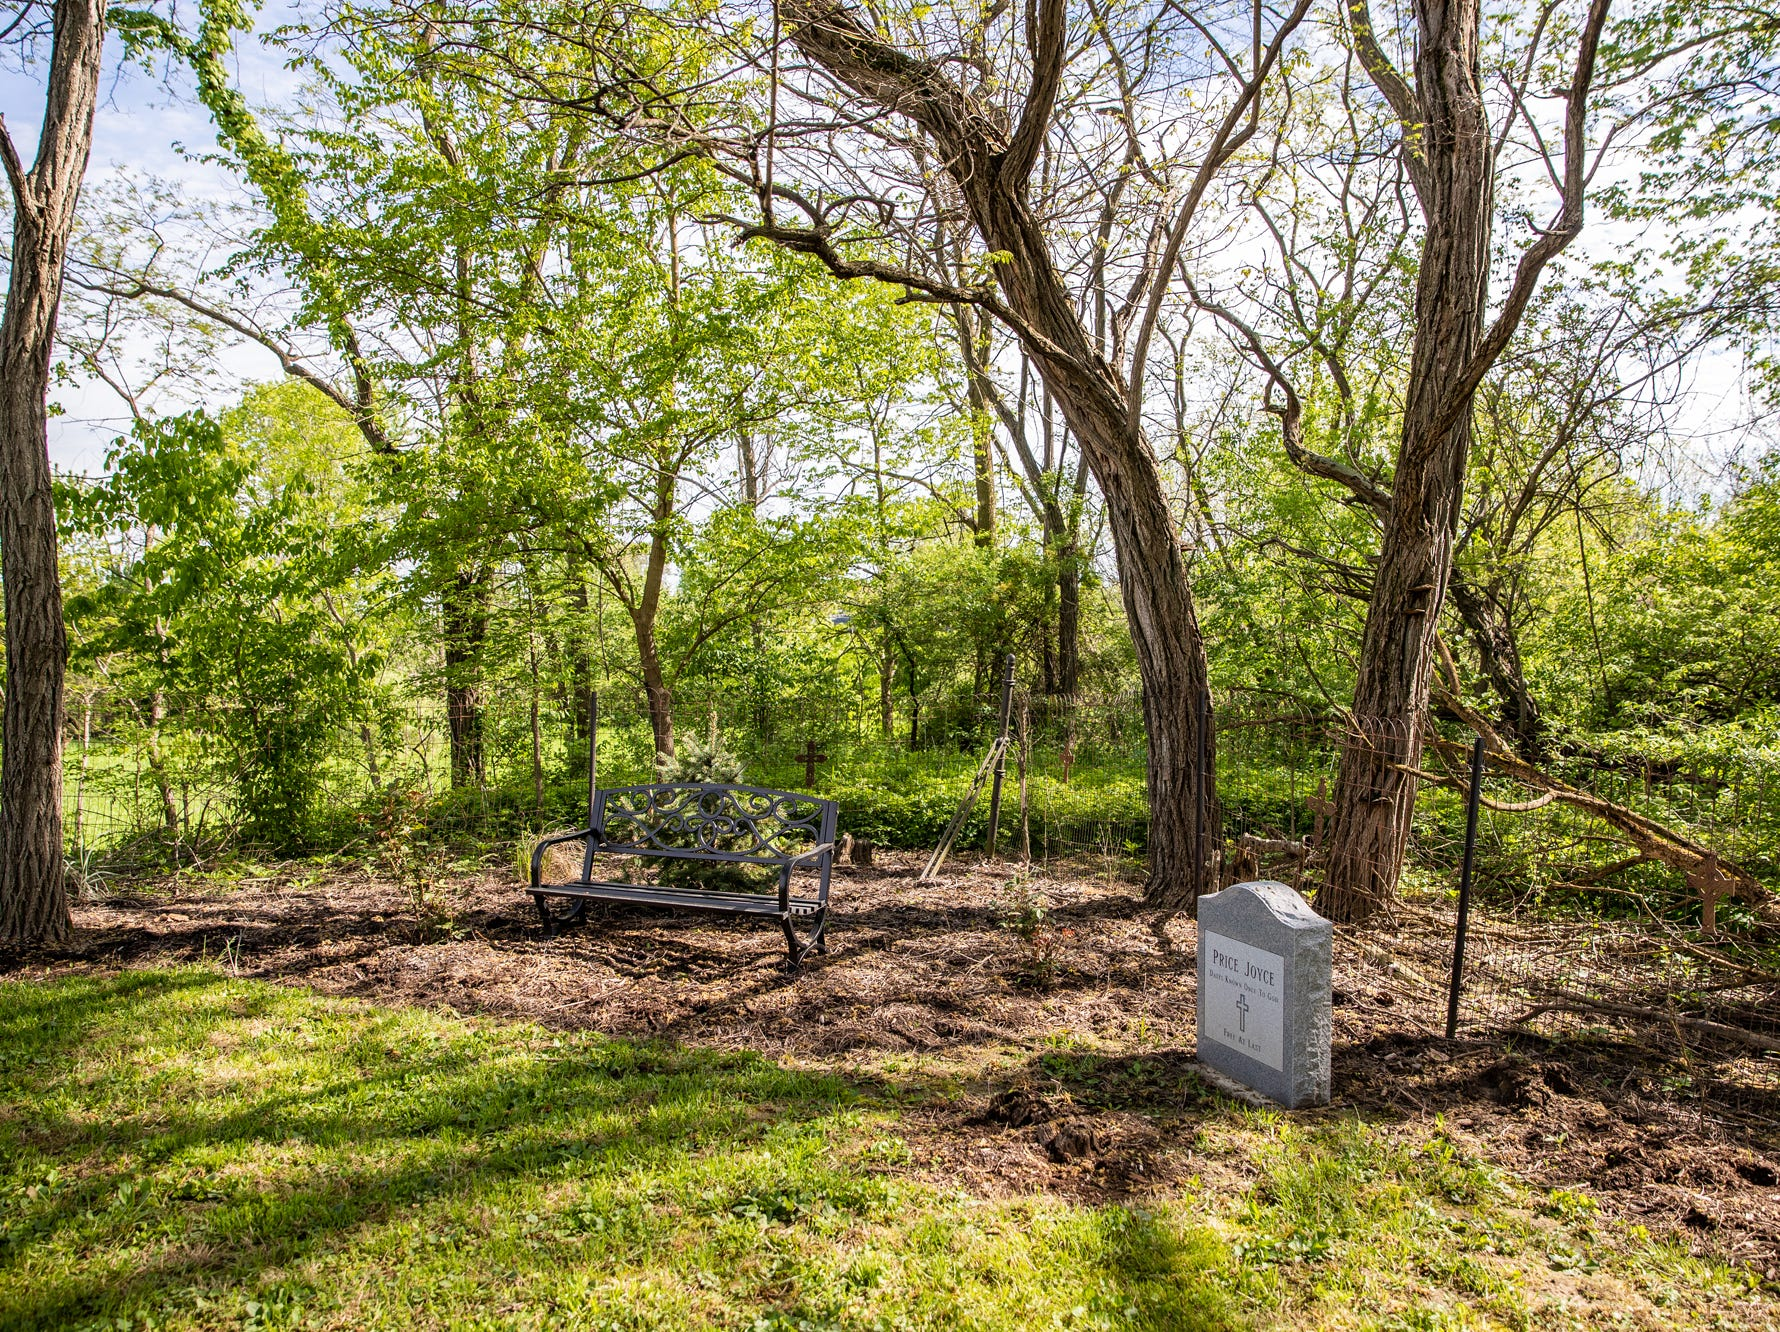 The grave of Price Joyce, a slave once owned by Jeff Purvis' great-great-great-grandfather, Alexander Joyce II, on Saturday, May 11, 2019.